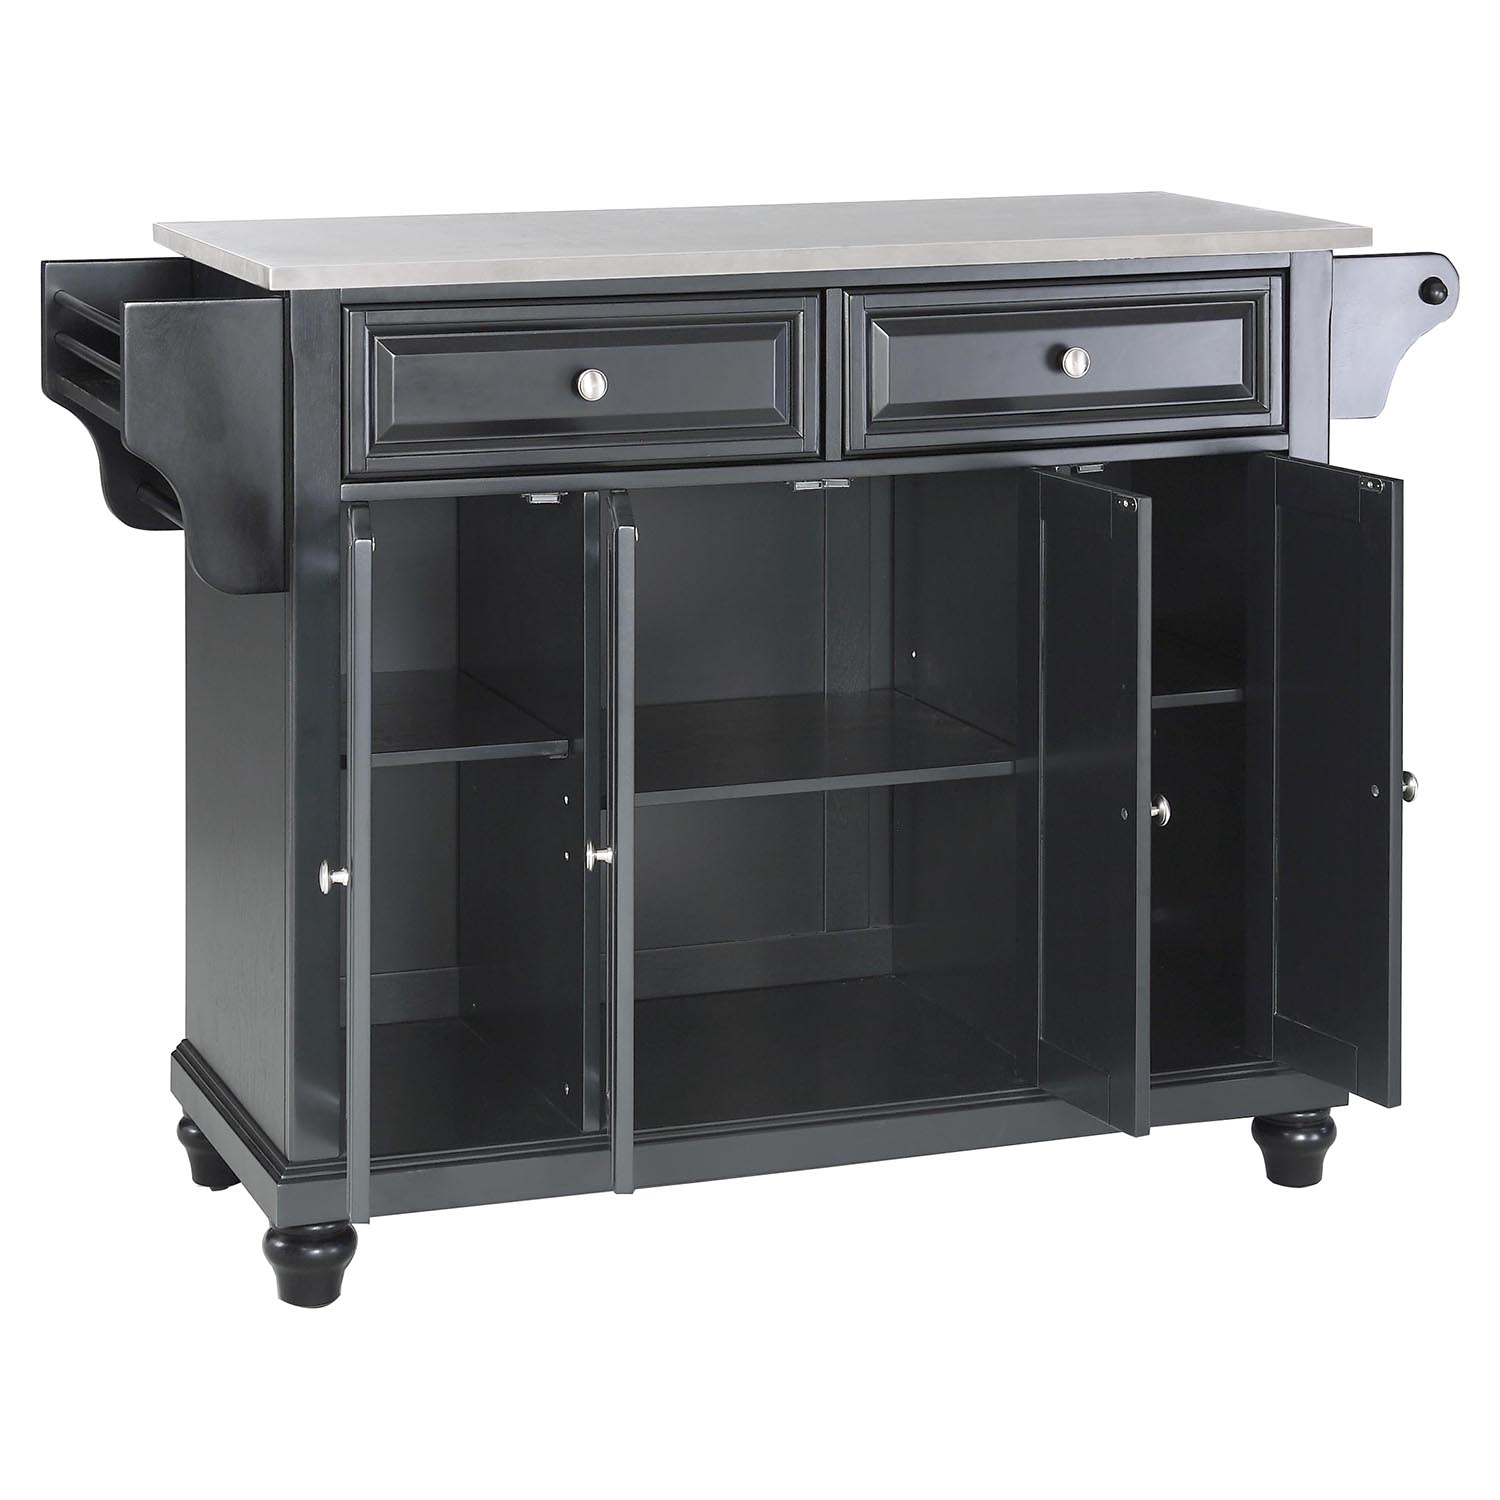 Cambridge Stainless Steel Top Kitchen Island Black Dcg Stores